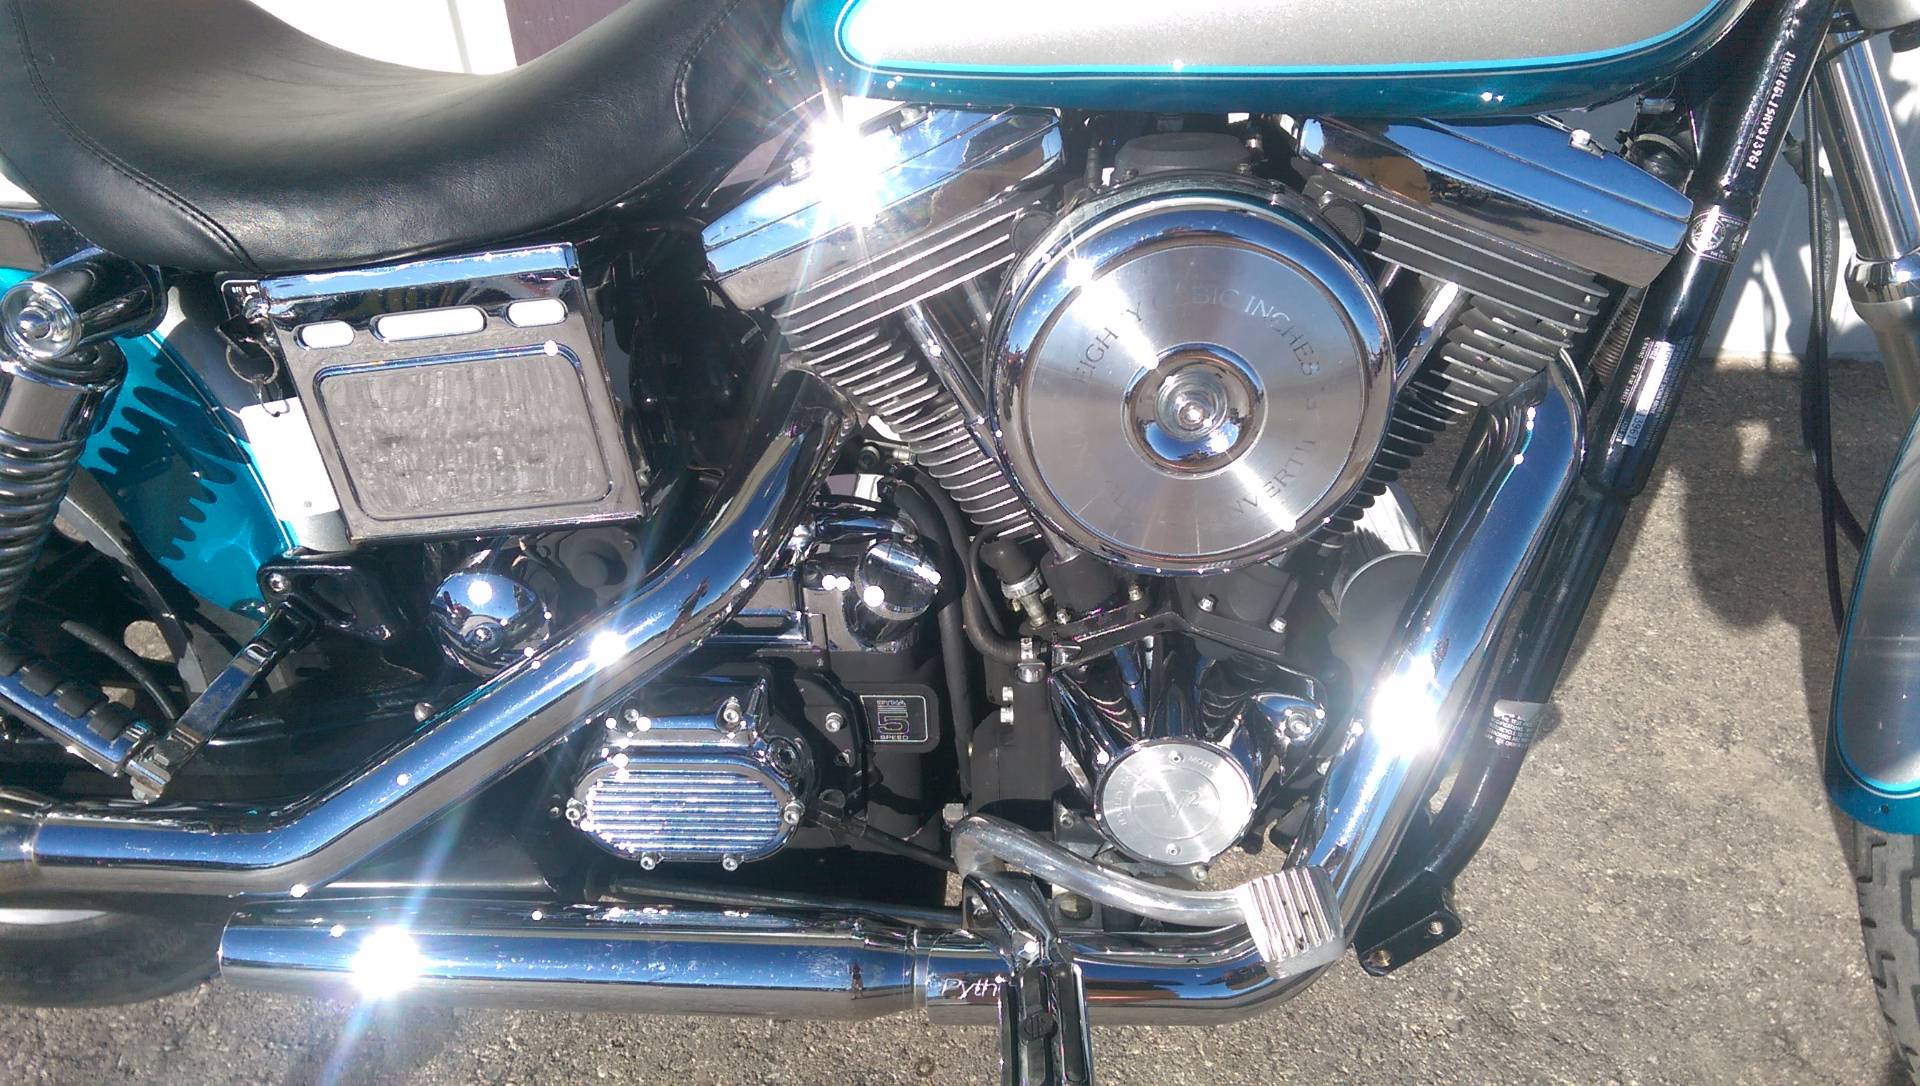 1994 Harley-Davidson FXDS Dyna Convertible 5